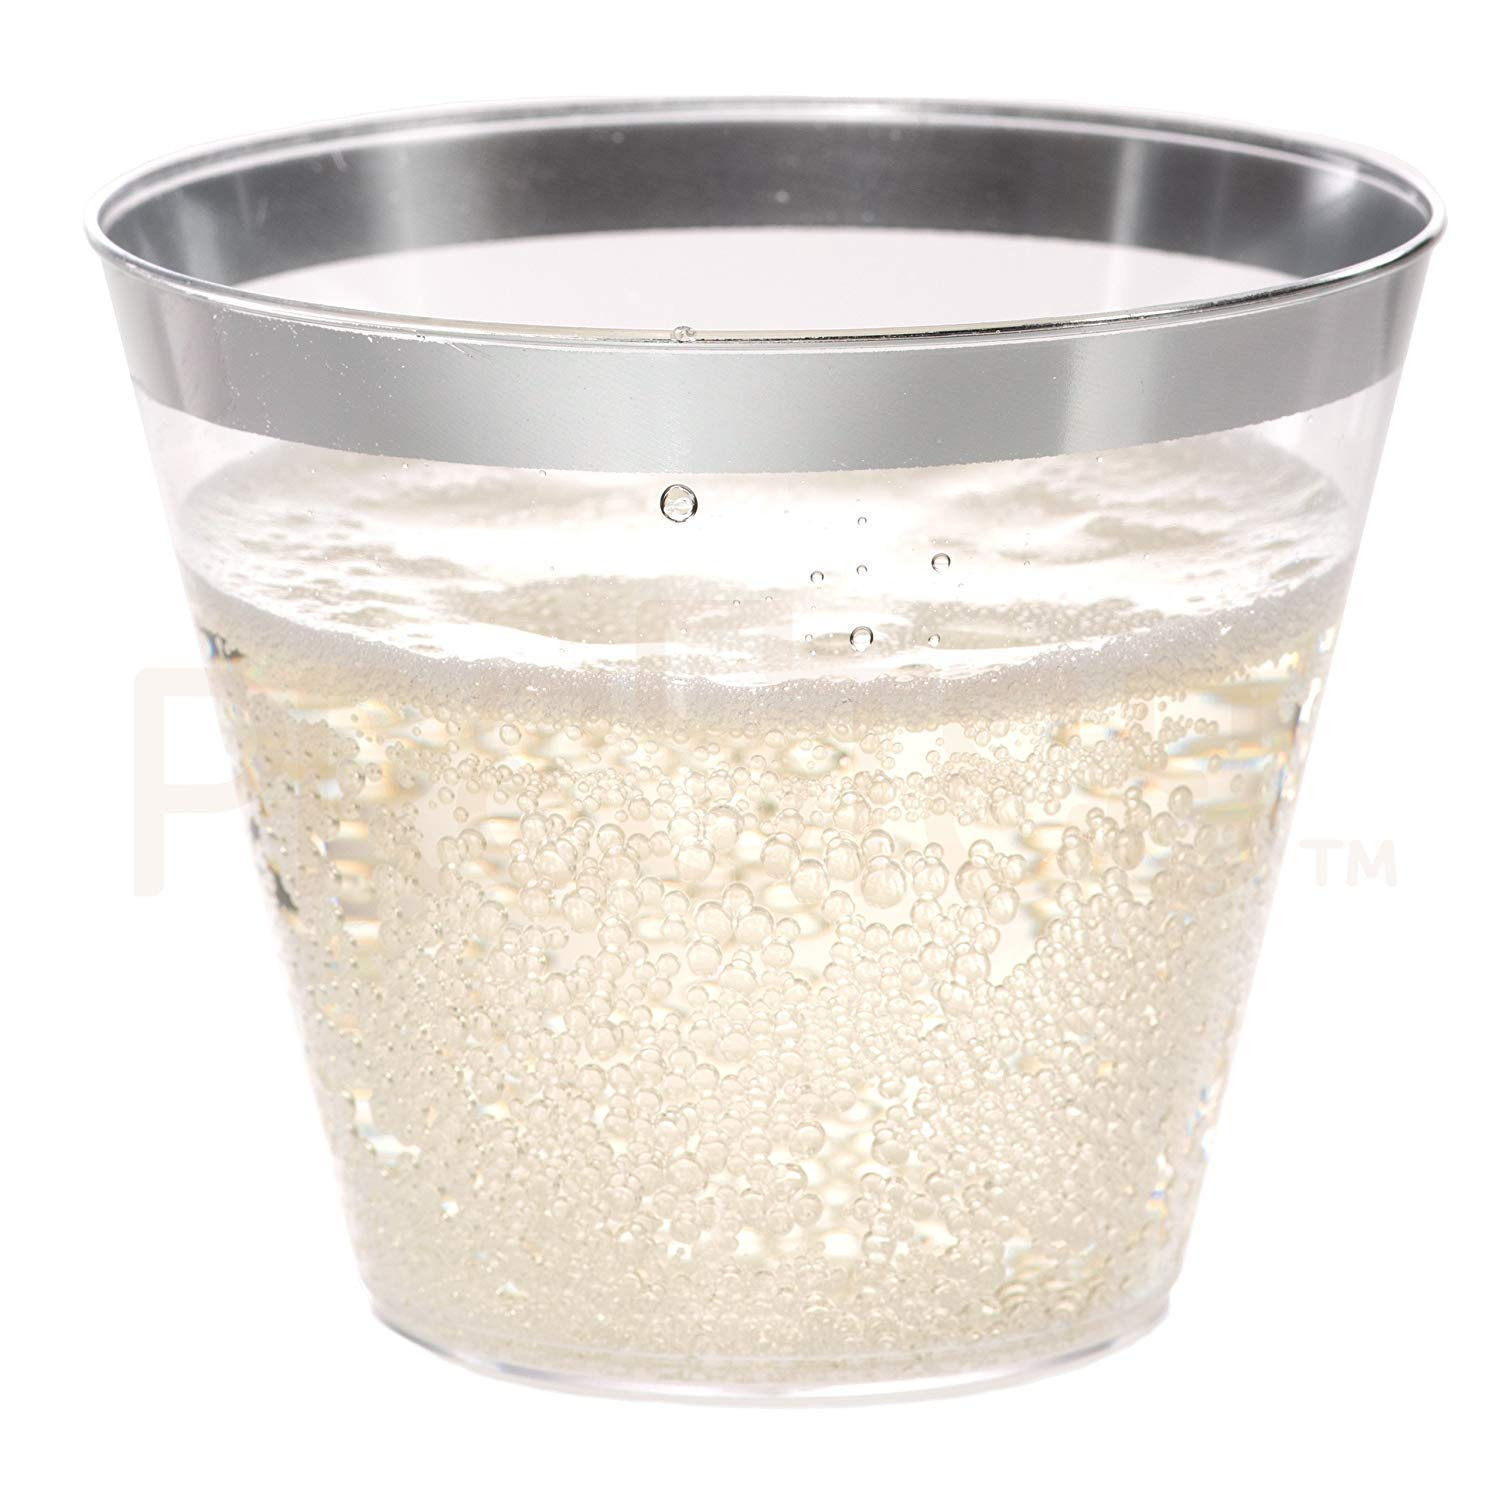 5 inch square glass vases of amazon com silver plastic cups 5 oz 100 pack hard clear in amazon com silver plastic cups 5 oz 100 pack hard clear plastic cups disposable party cups fancy wedding tumblers nice silver rim plastic cups